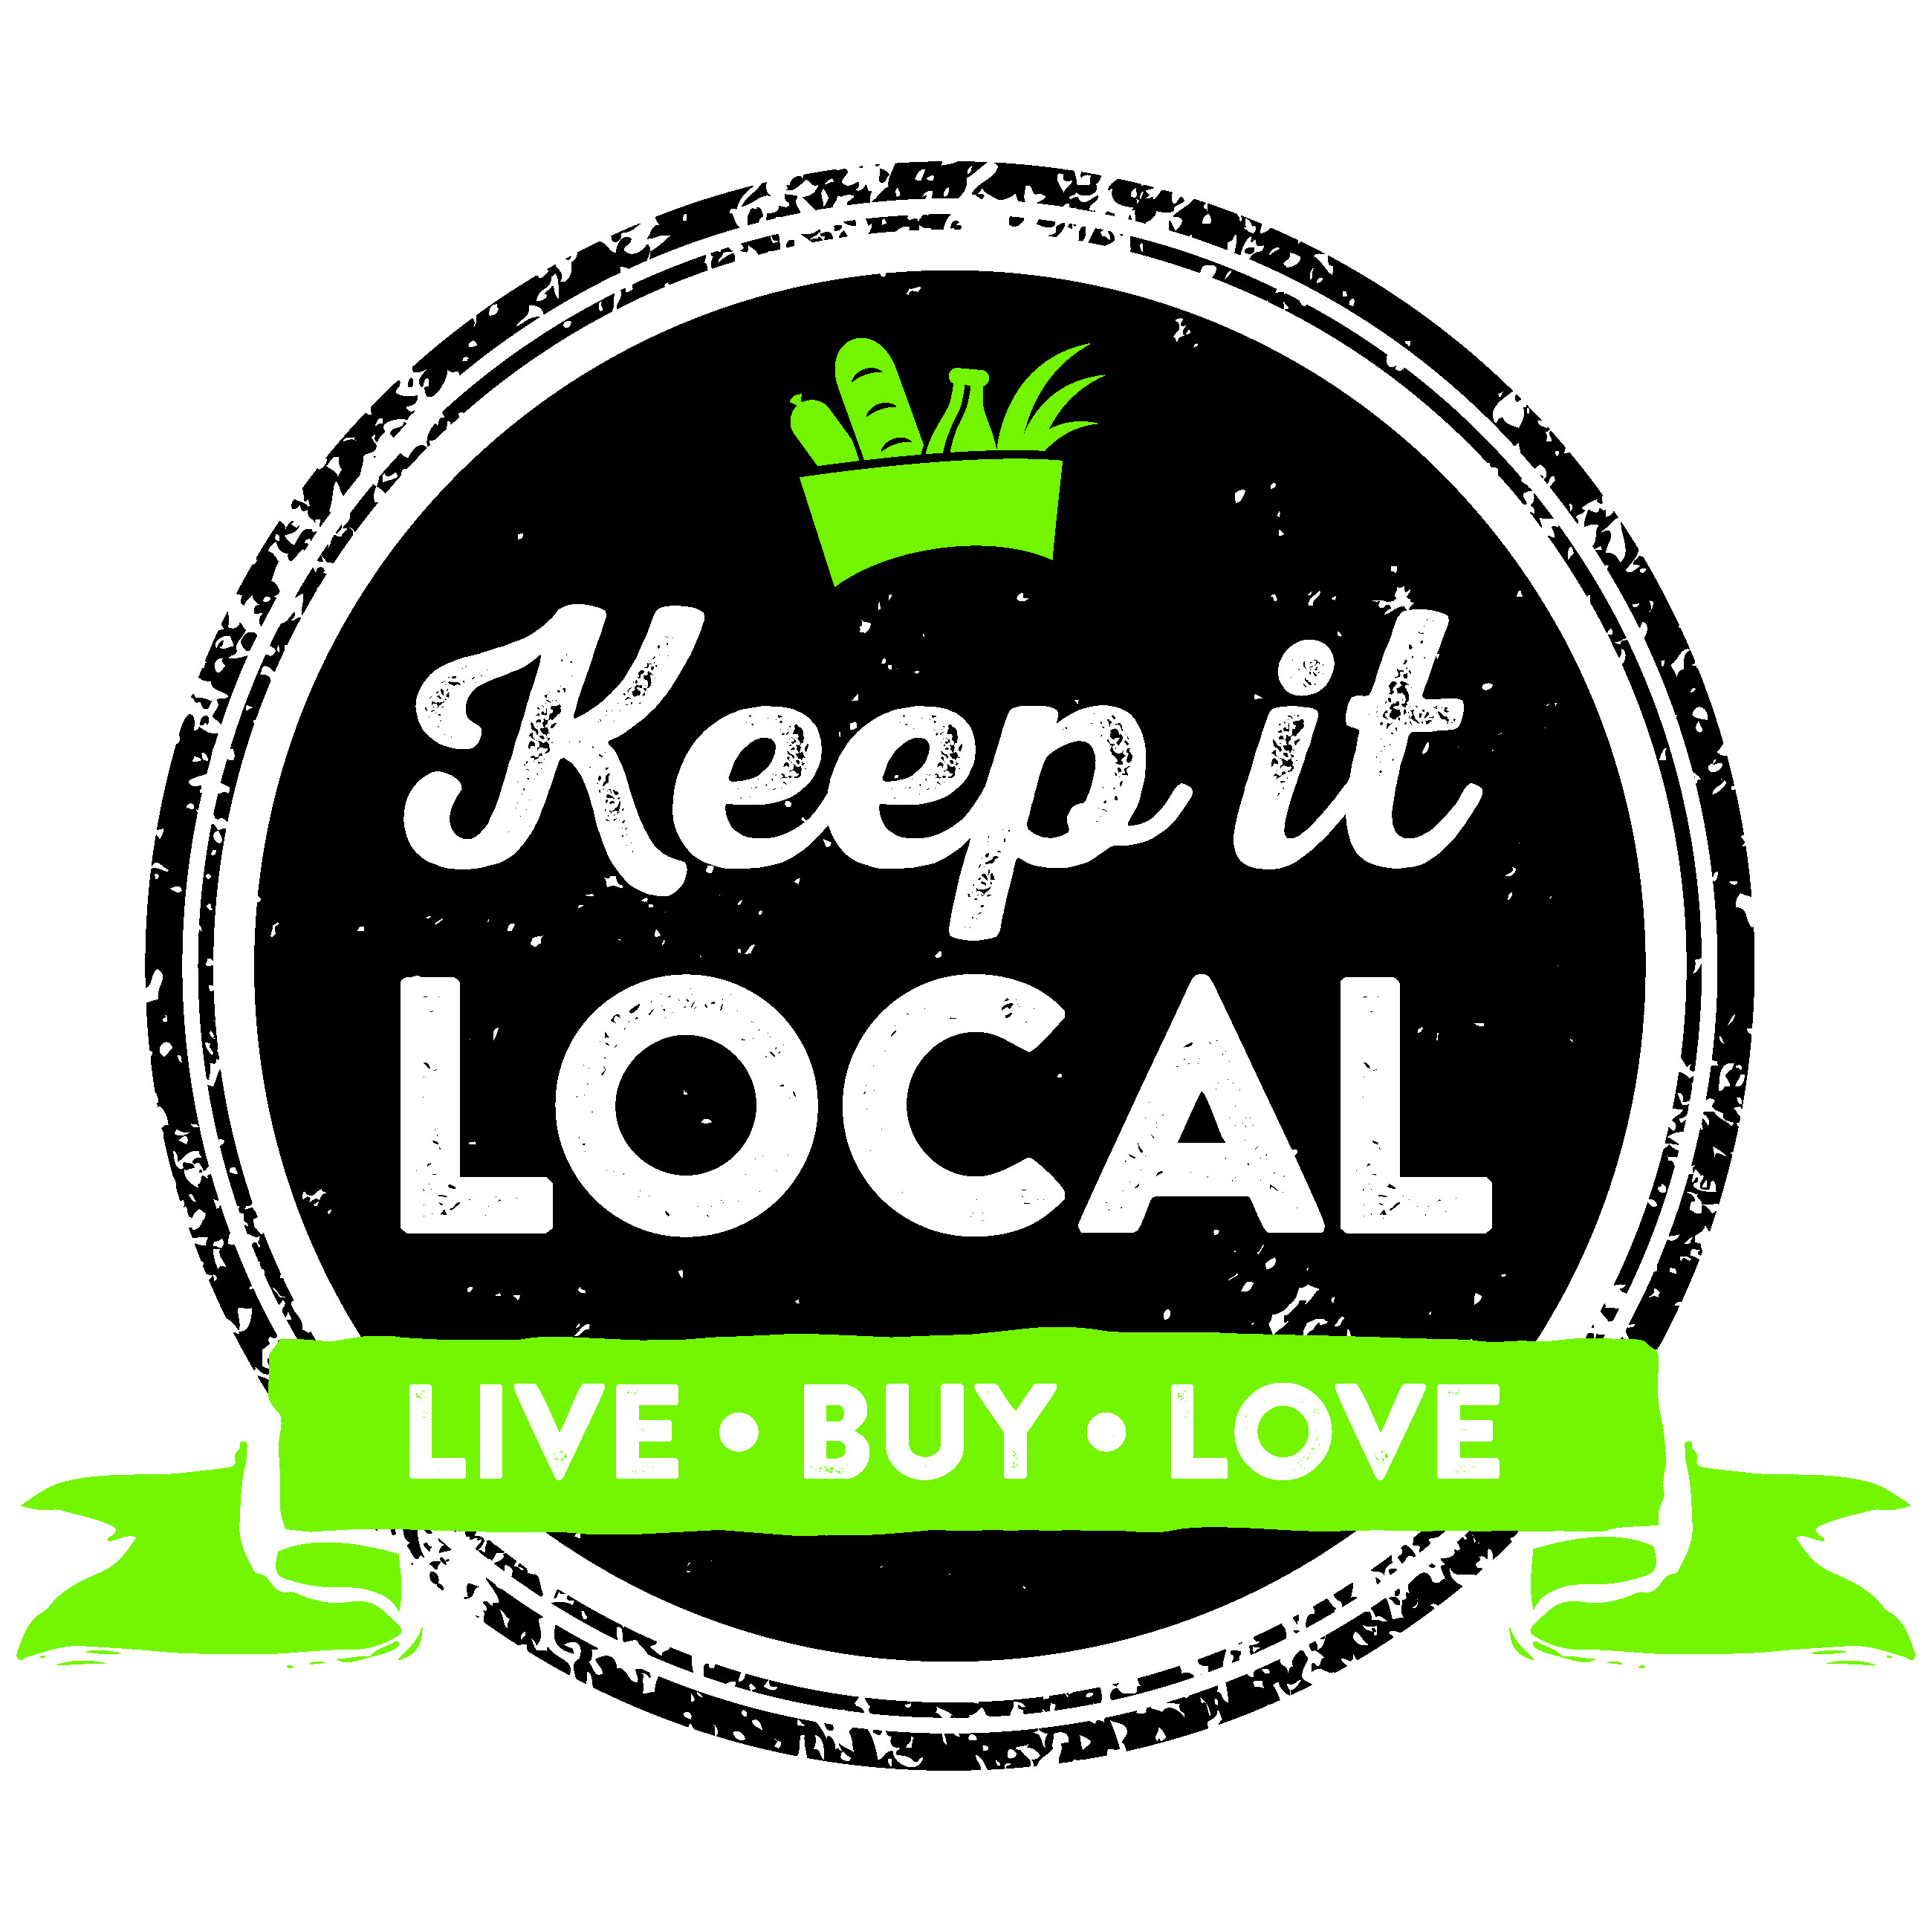 East of England Keep it Local logo